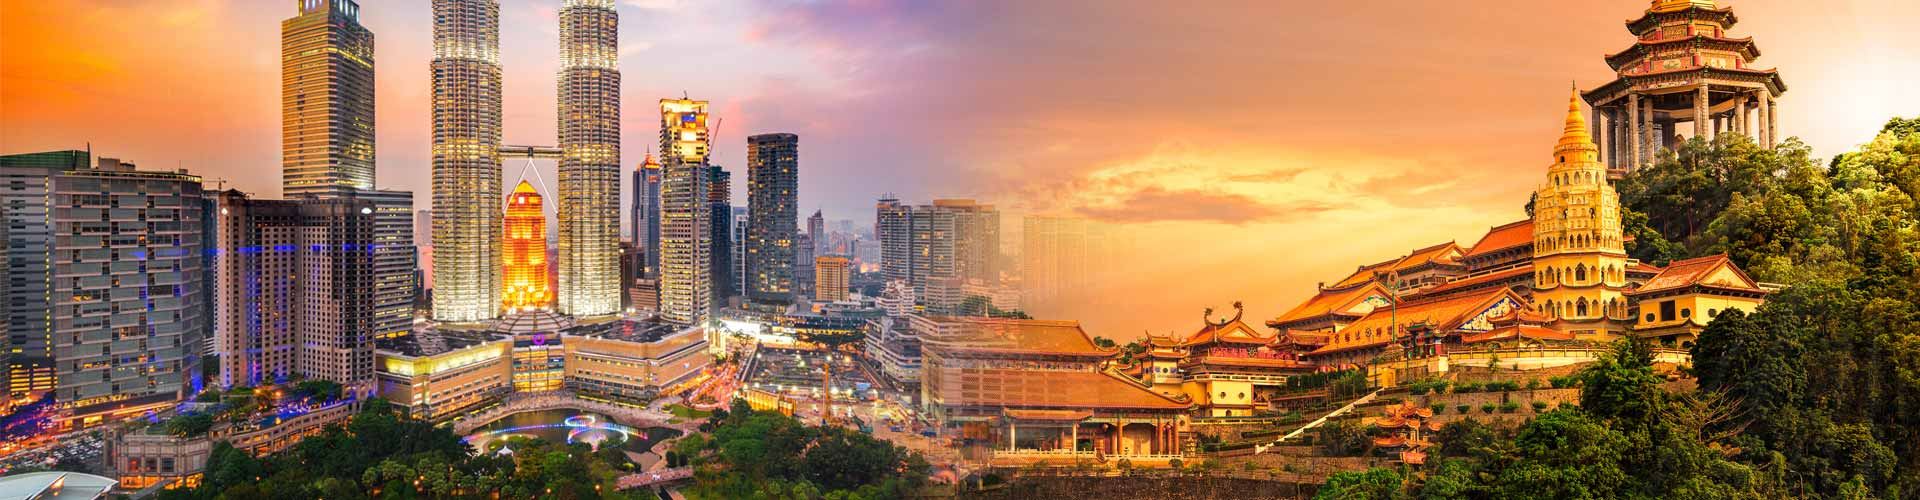 Malaysia  Multicentre Holidays in 2017 & 2018 with Destination2